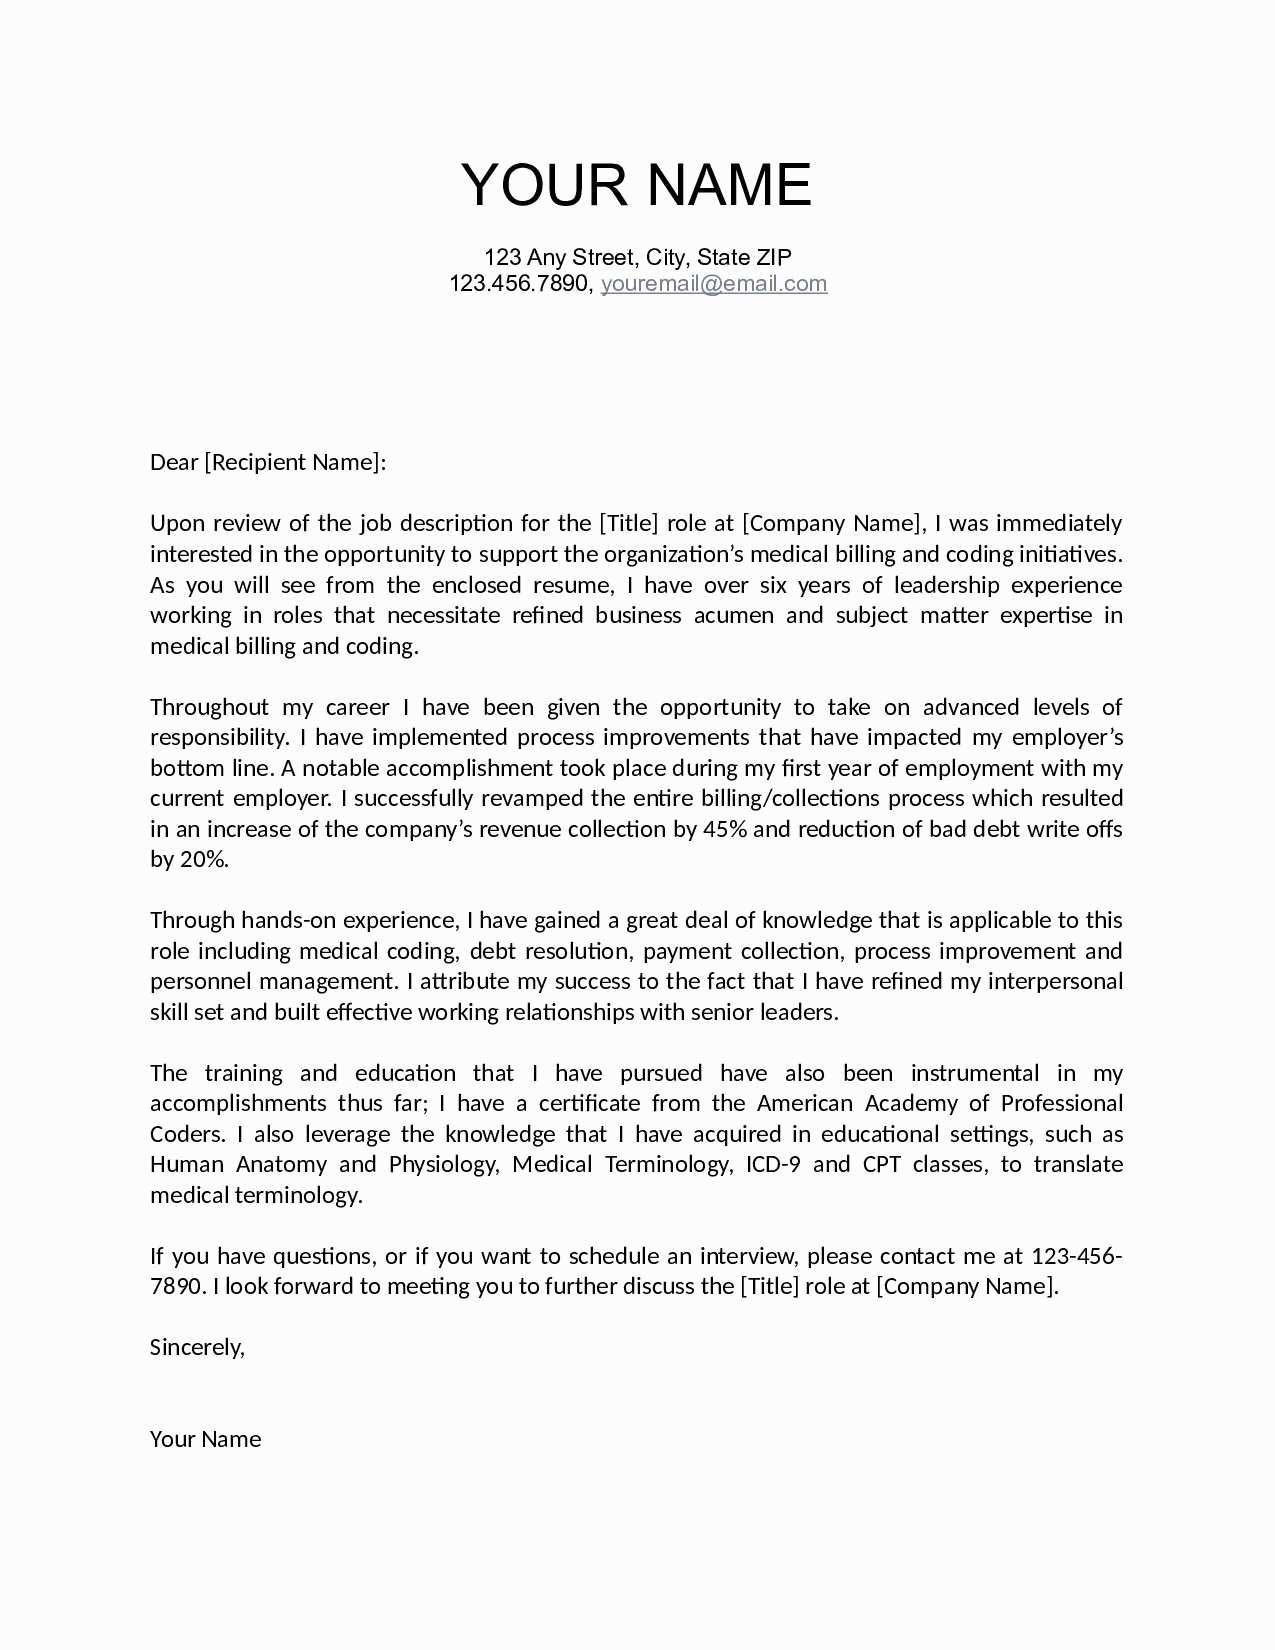 Hiring Letter Template - formal Job Fer Letter Valid Job Fer Letter Template Us Copy Od